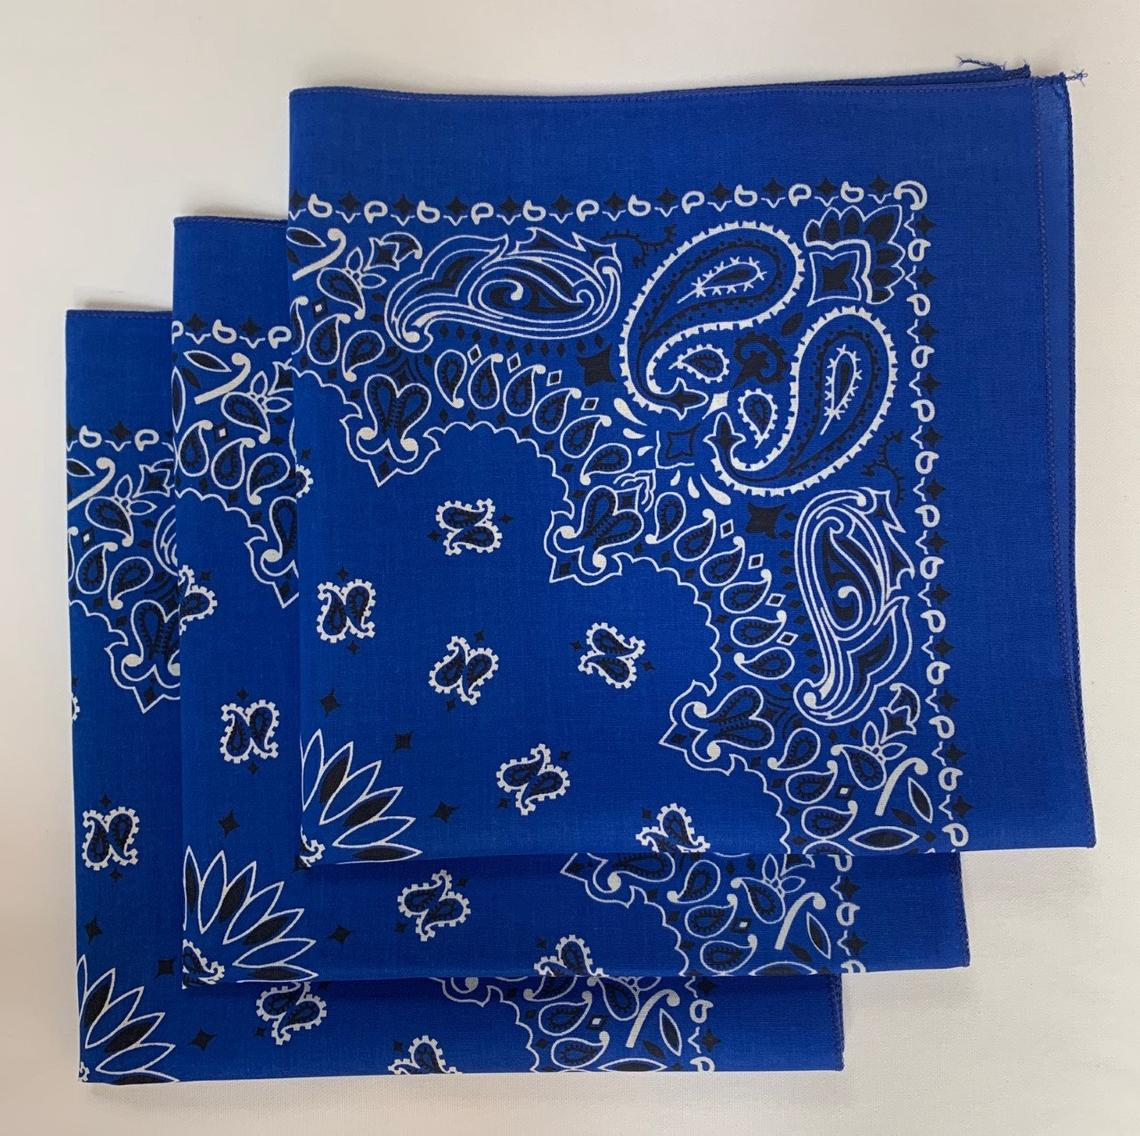 "Royal Blue Paisley Bandanas - Made In The USA (3 Pk) 22"" x 22""a"